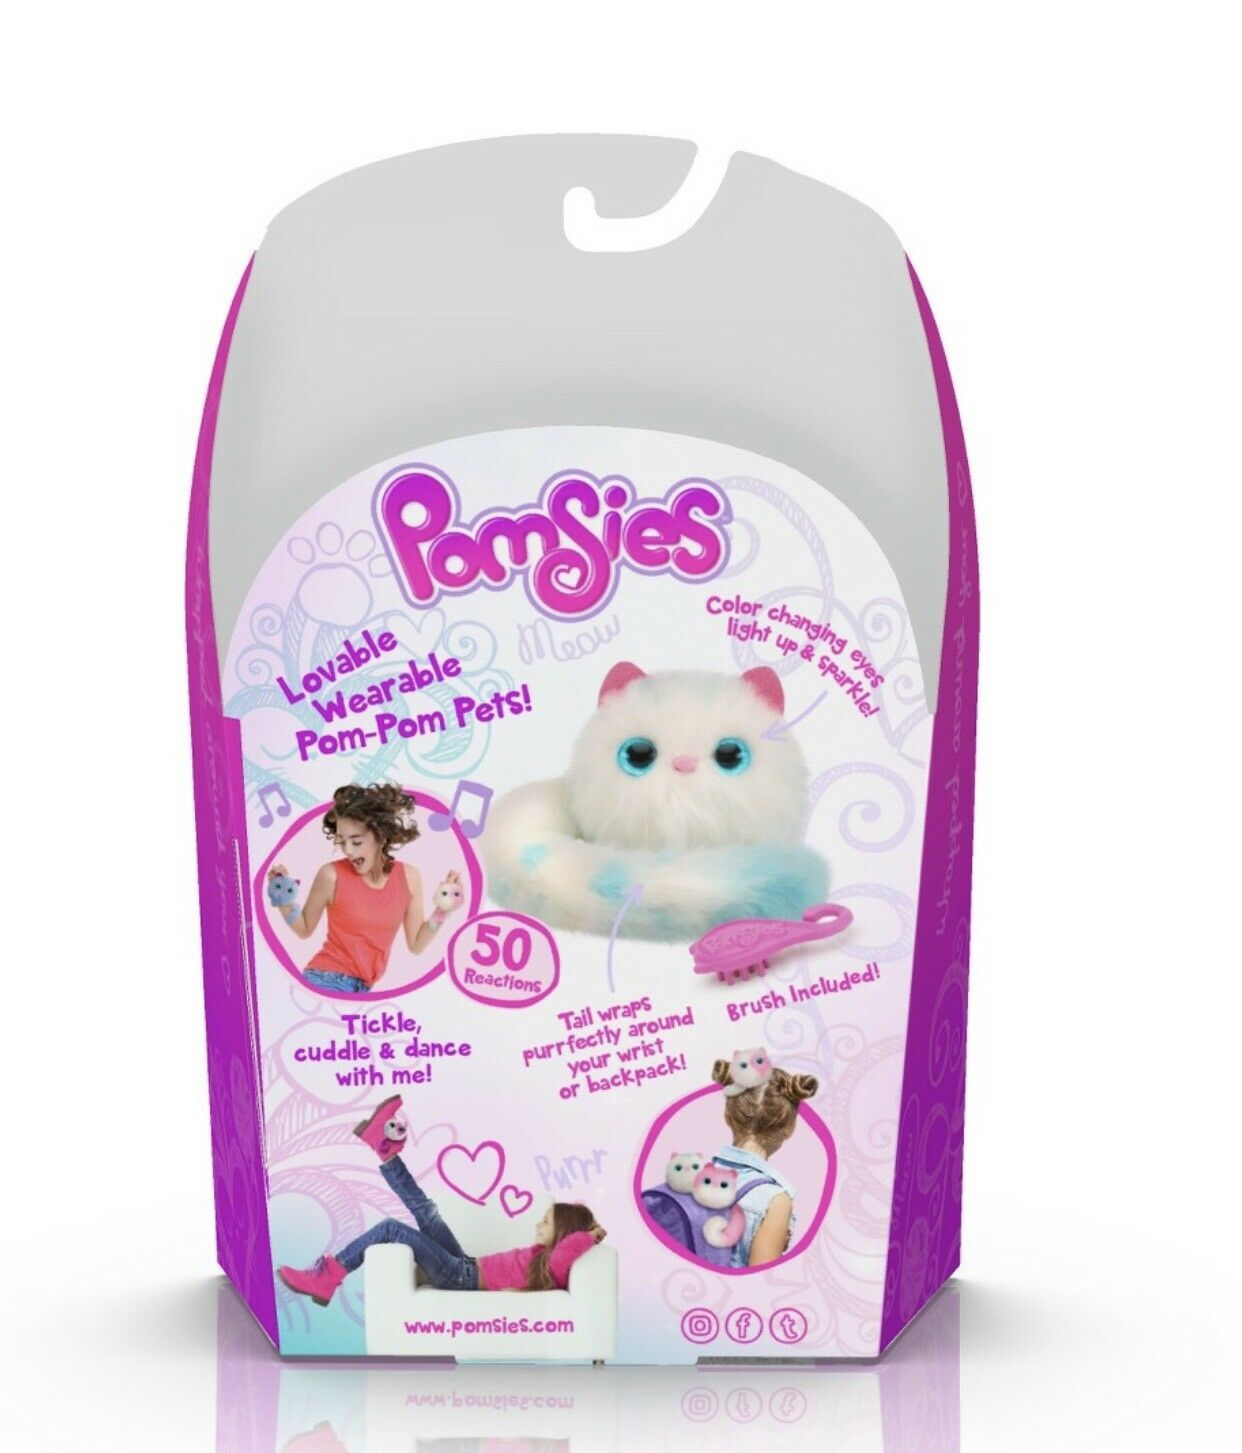 Pomsies Pom-Pom Wearable Pet -SNOWBALL